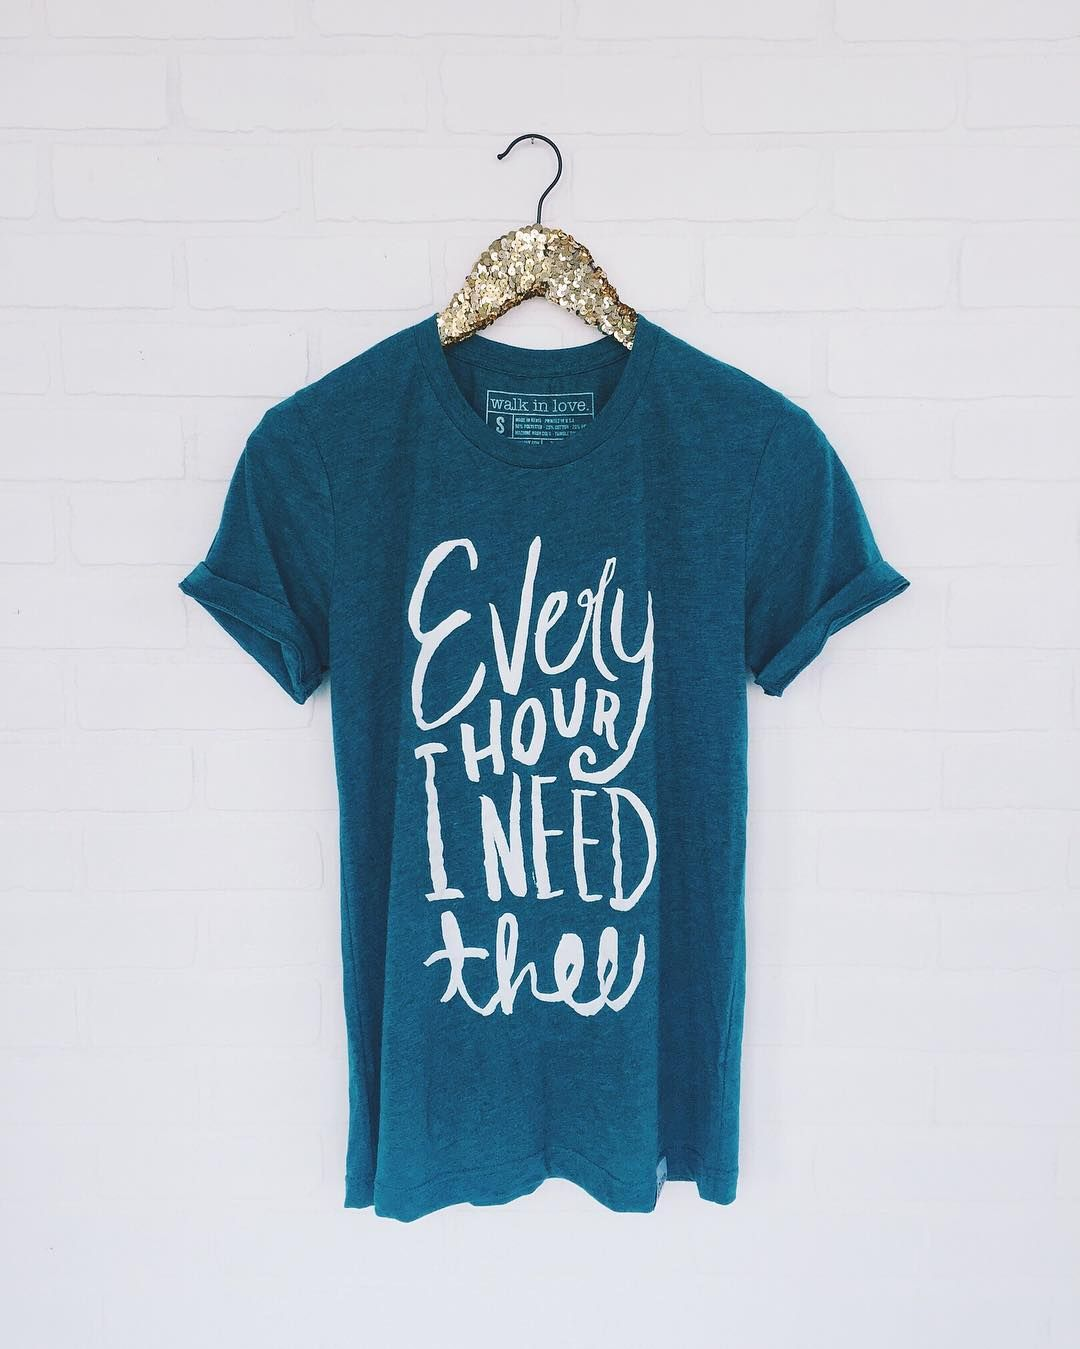 Our Newest Design On The Best Teal Color Youve Ever Laid Eyes On